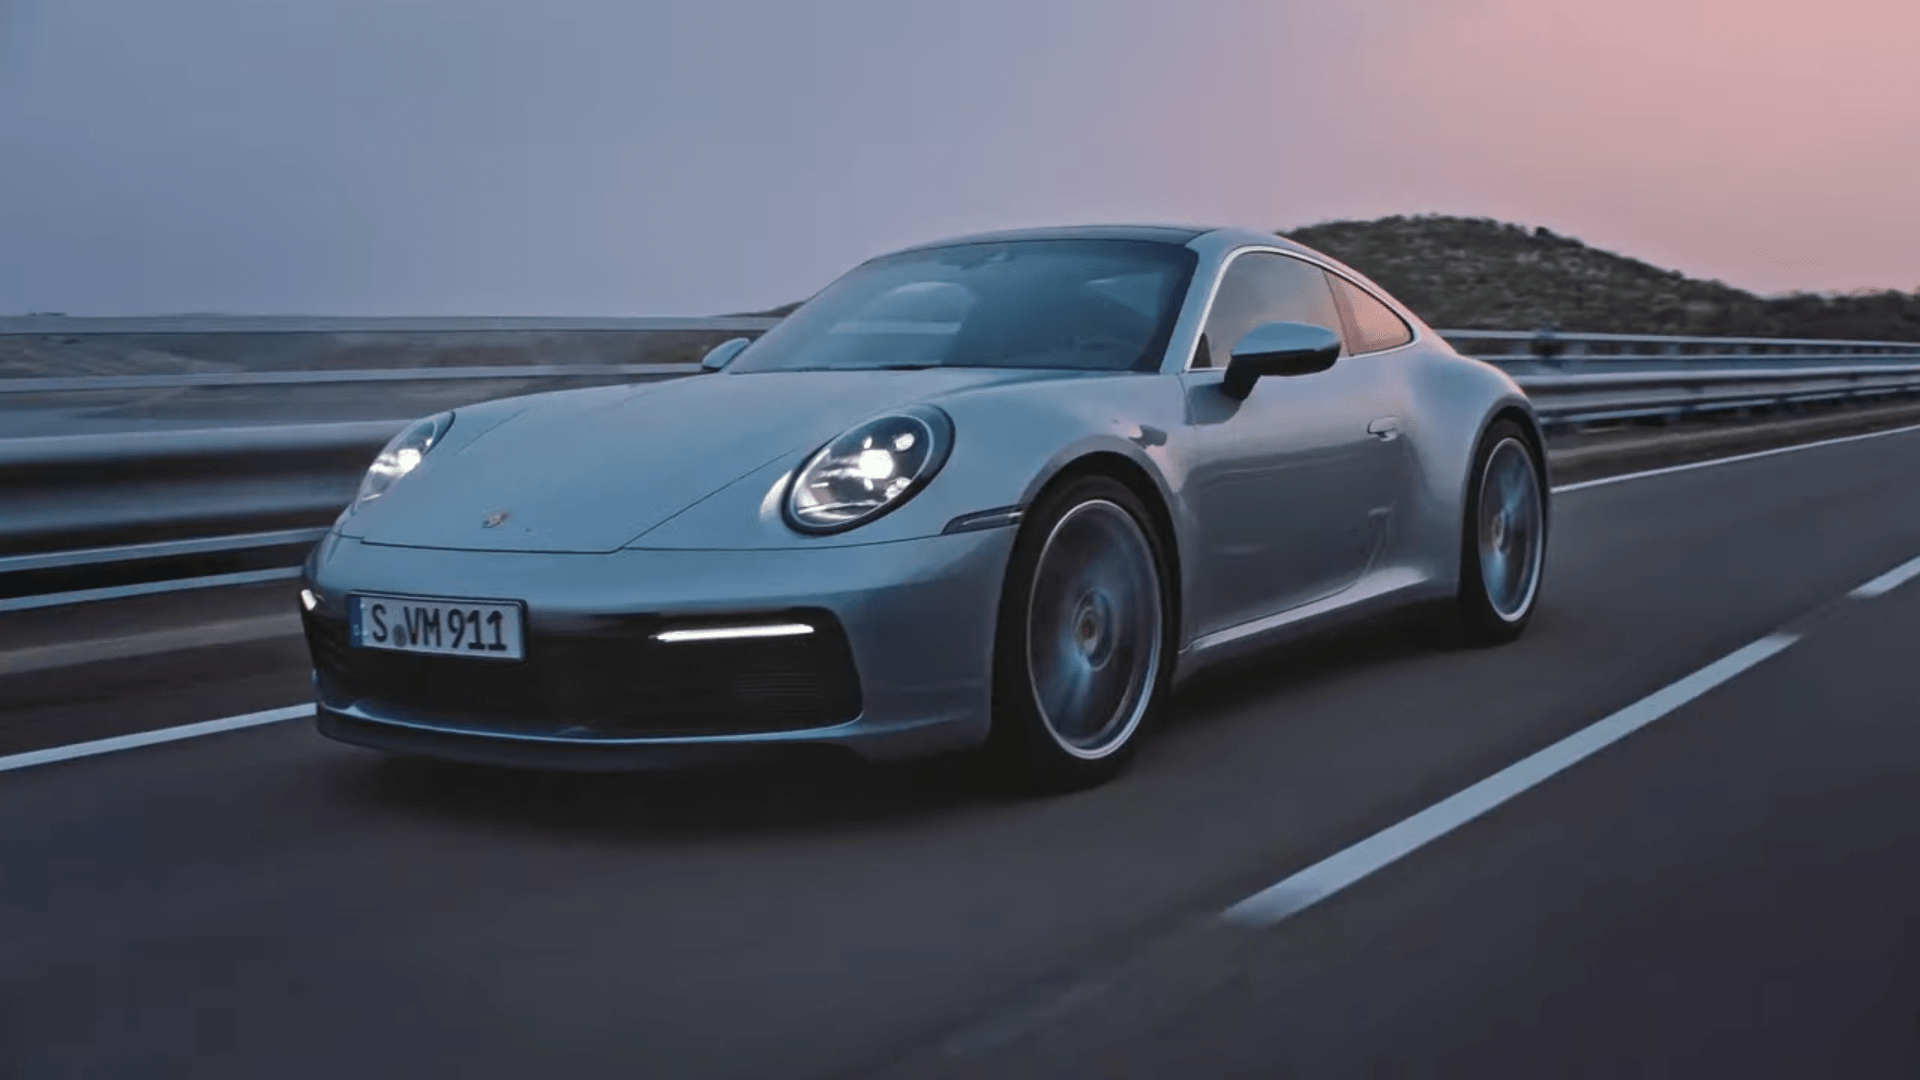 Porsche Taycan vs Tesla Model S Specs, price, performance